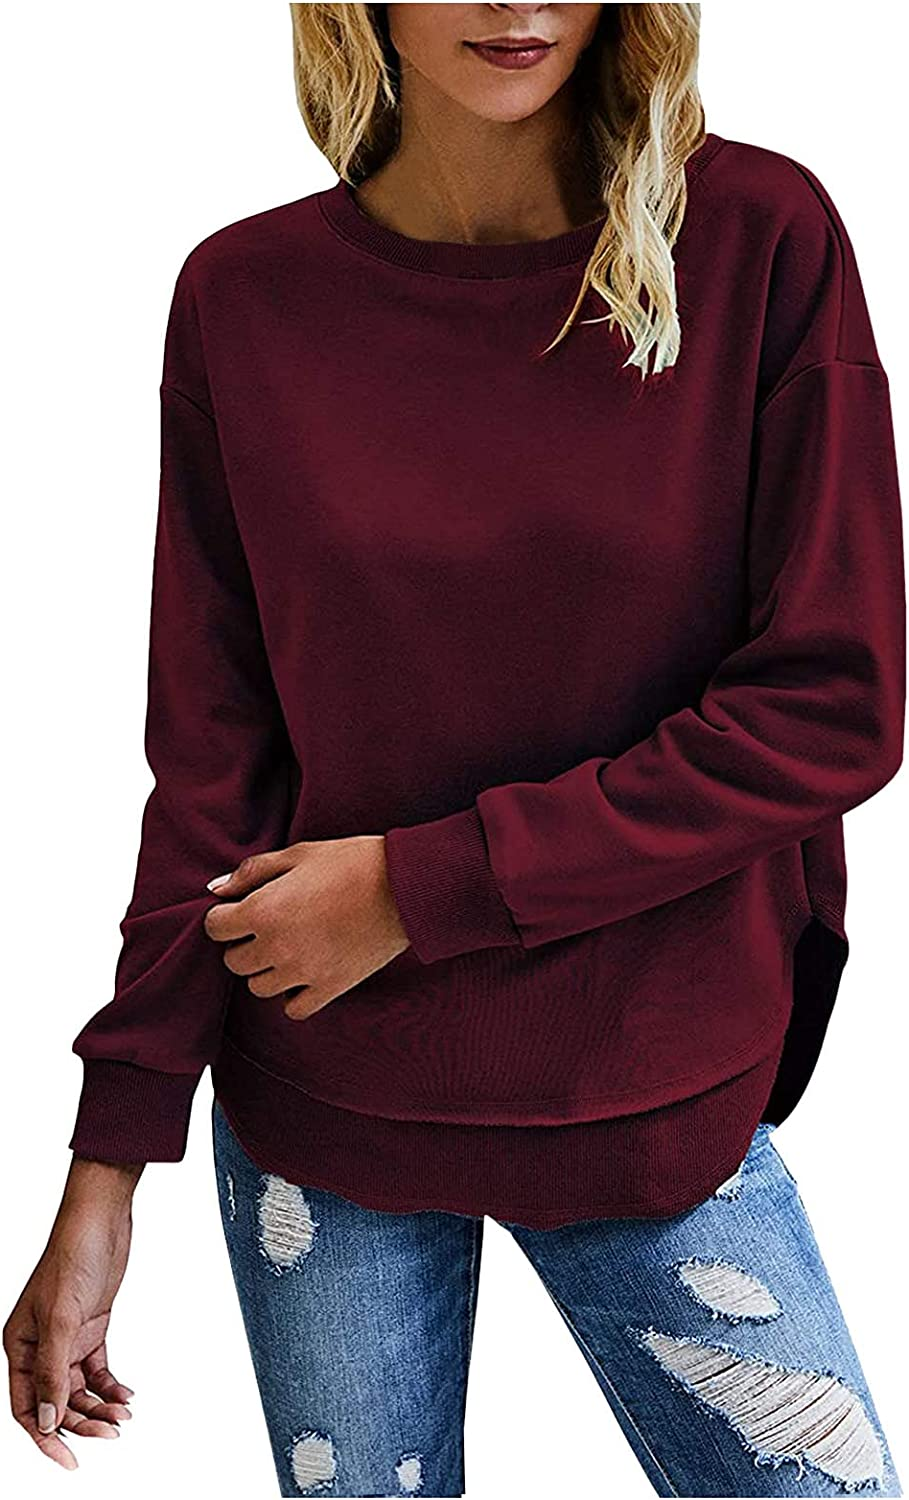 PLENTOP 2021 Women's Solid Color Sporty Sweatshirt Crew Neck Long Sleeves Pullover Ribbed Cuffs Hems Sweaters Outwear